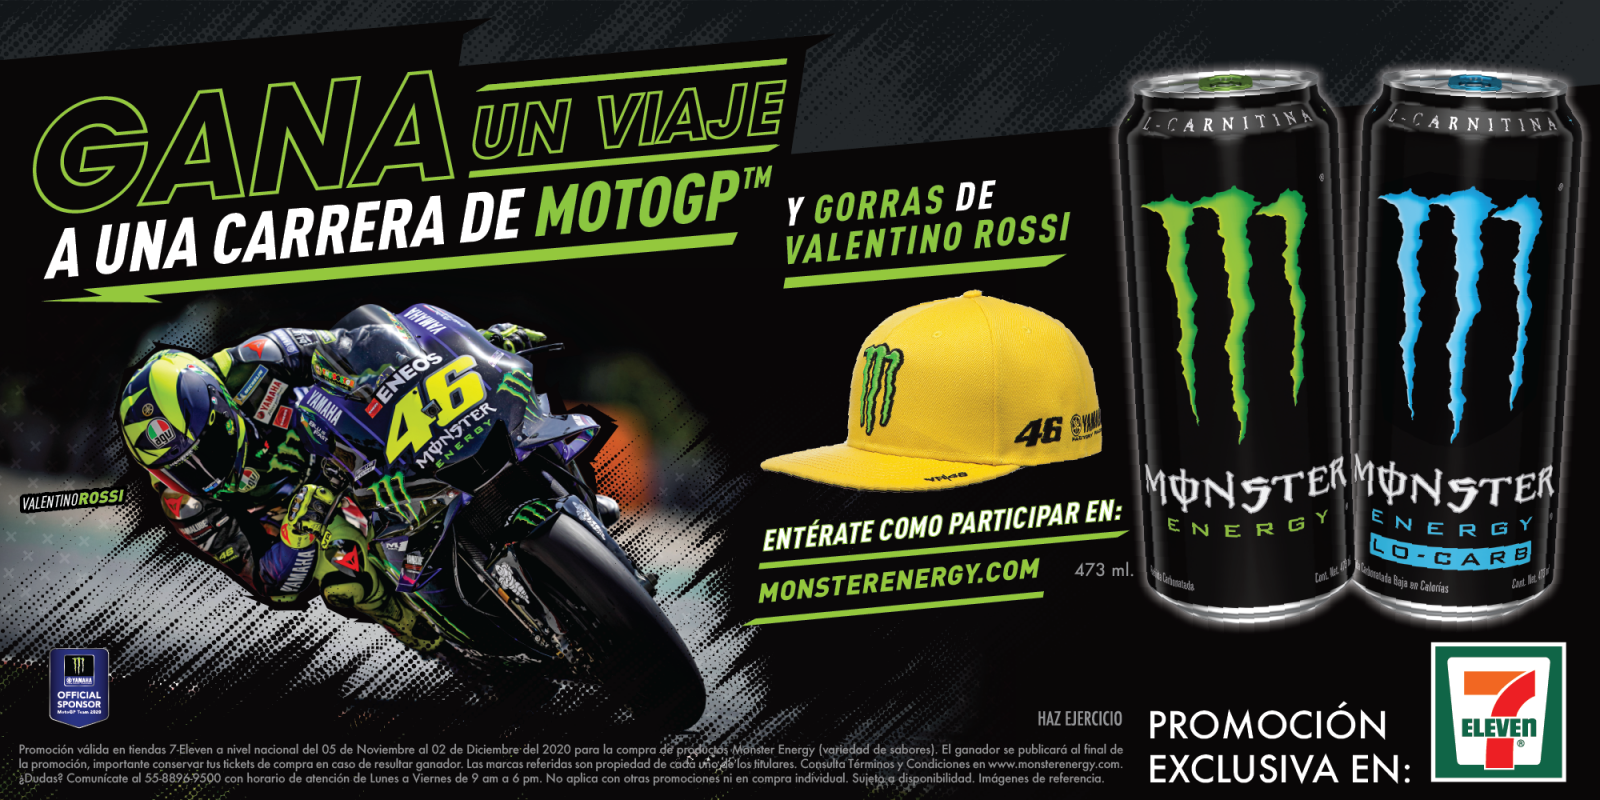 Moto GP 2020 Consumer Promotions Mexico